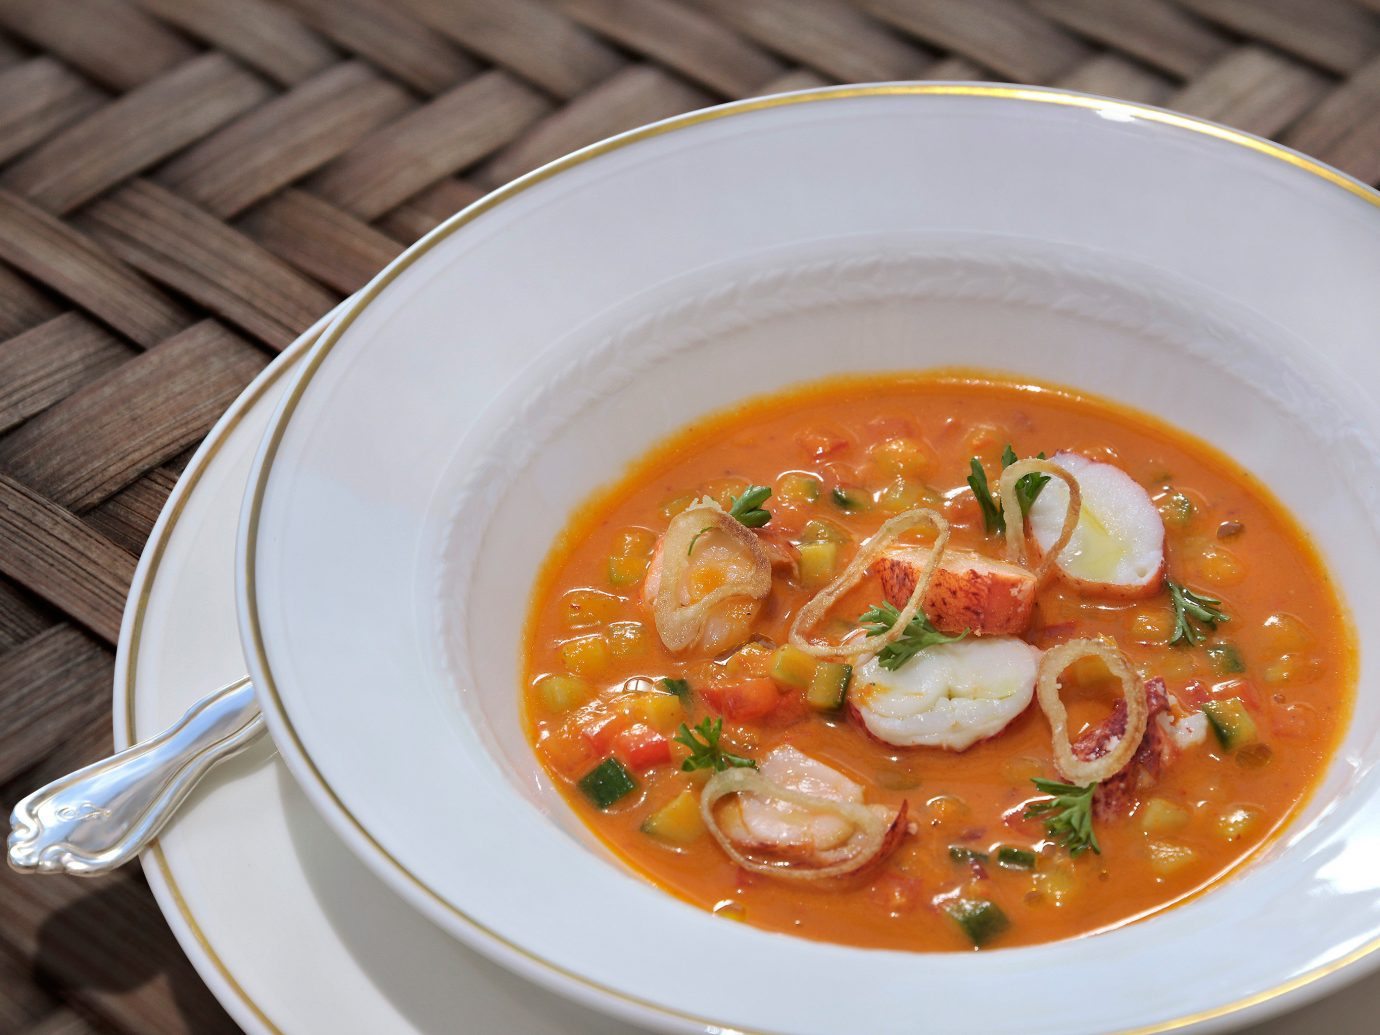 Dining Drink Eat Luxury Trip Ideas plate food table soup dish bowl produce vegetable cuisine curry Seafood orange